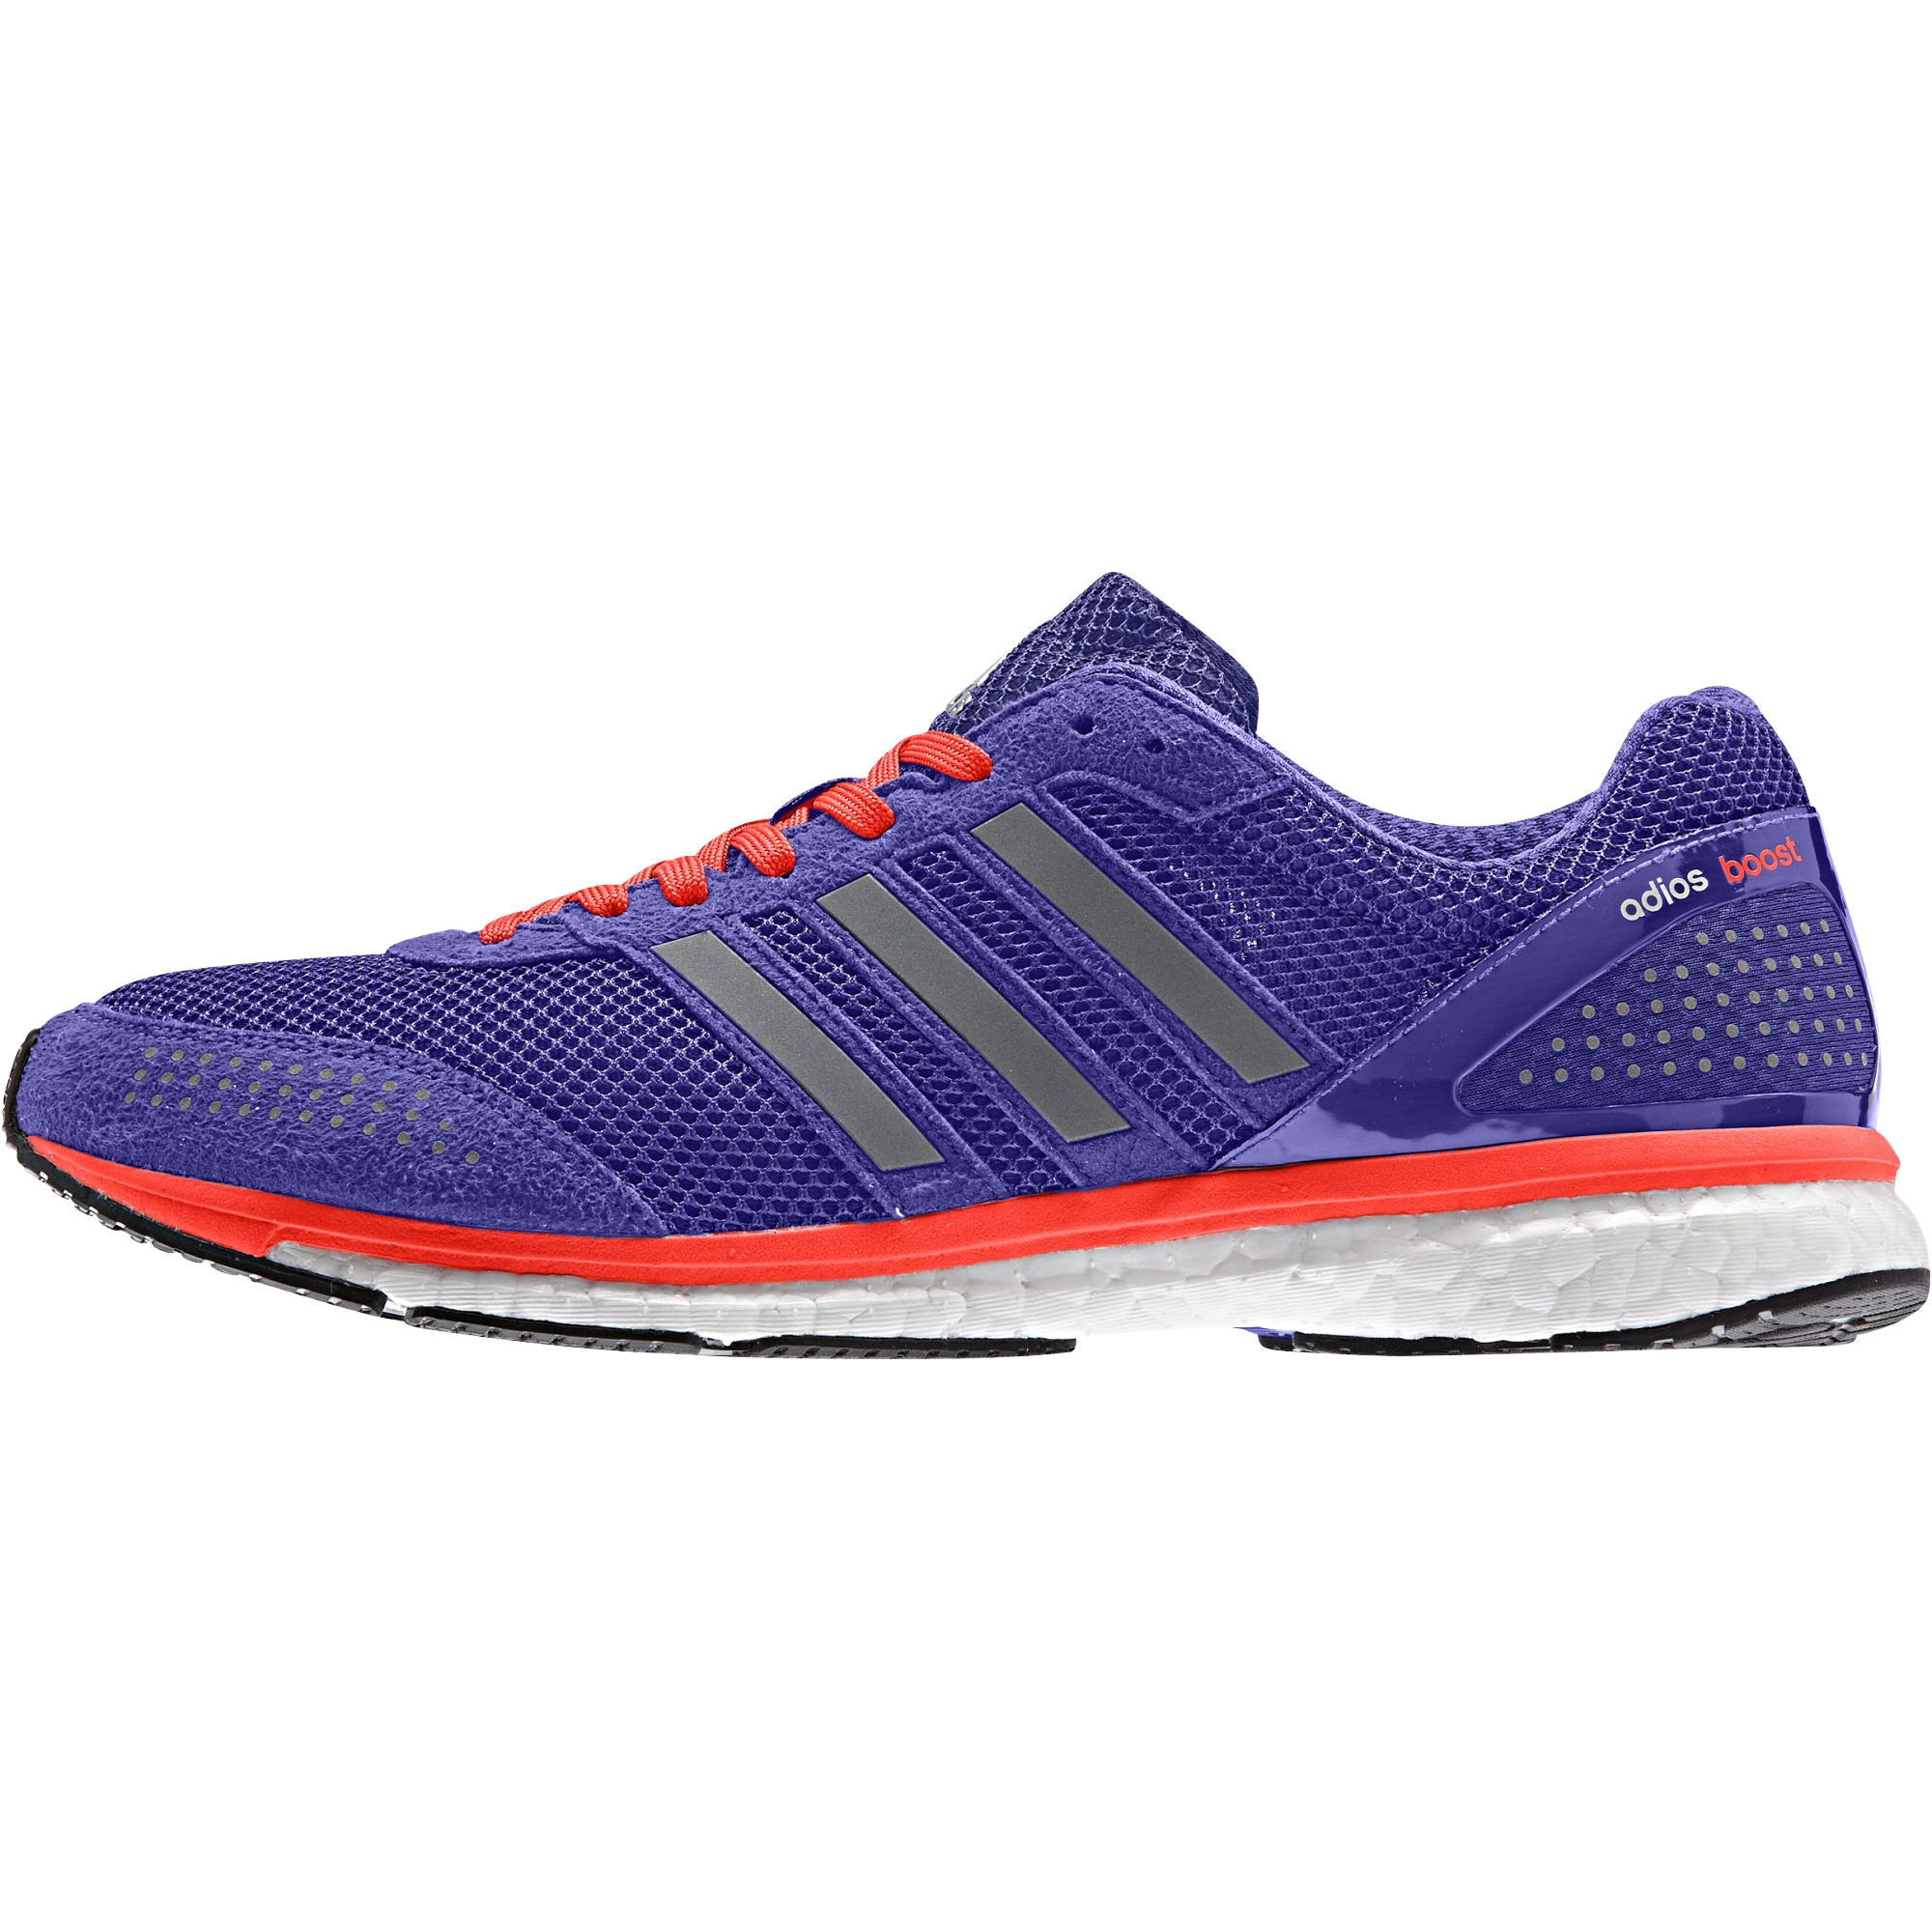 chaussures de running de comp tition adidas adizero adios boost 2 shoes ss15 wiggle france. Black Bedroom Furniture Sets. Home Design Ideas